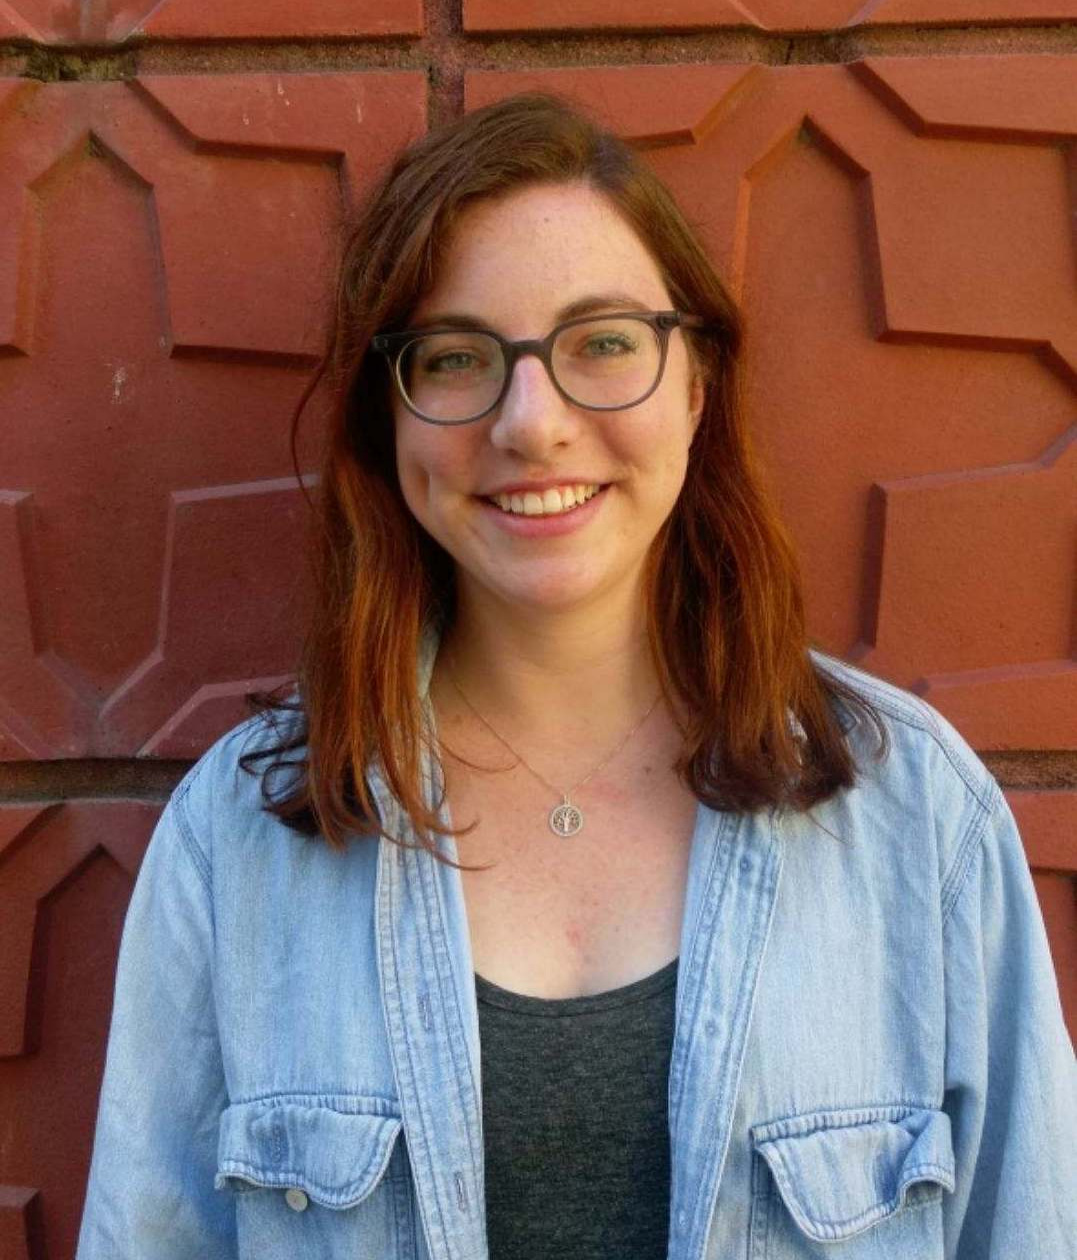 Valerie McGraw, Head Steward - Valerie is a 2nd year in the Chemistry PhD program at UC Berkeley. She first became involved with UAW 2865 in January of 2018 as a co-captain for the science and math sector in the UCB organizing committee. She helped organize tablings and walkthroughs in science departments, and led the planning for a sector town hall in the Spring. In September 2018, she was elected as a Co-Chair for Berkeley's Organizing Committee.